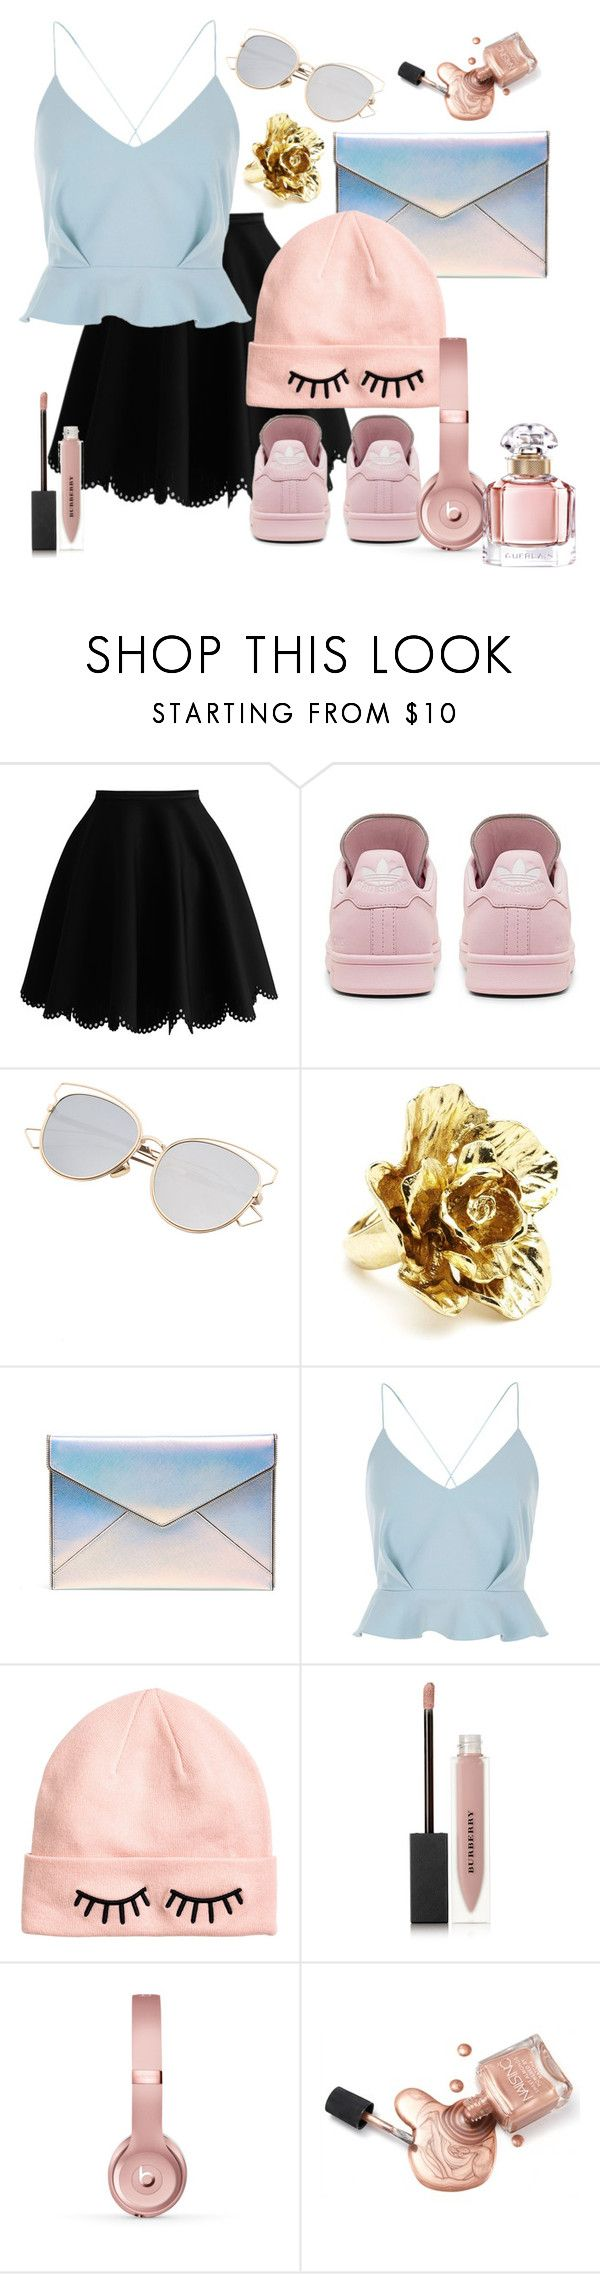 """""""Creative with beats"""" by hpfandomtrash ❤ liked on Polyvore featuring adidas, Oscar de la Renta, Rebecca Minkoff, River Island, H&M, Burberry, Beats by Dr. Dre and Guerlain"""